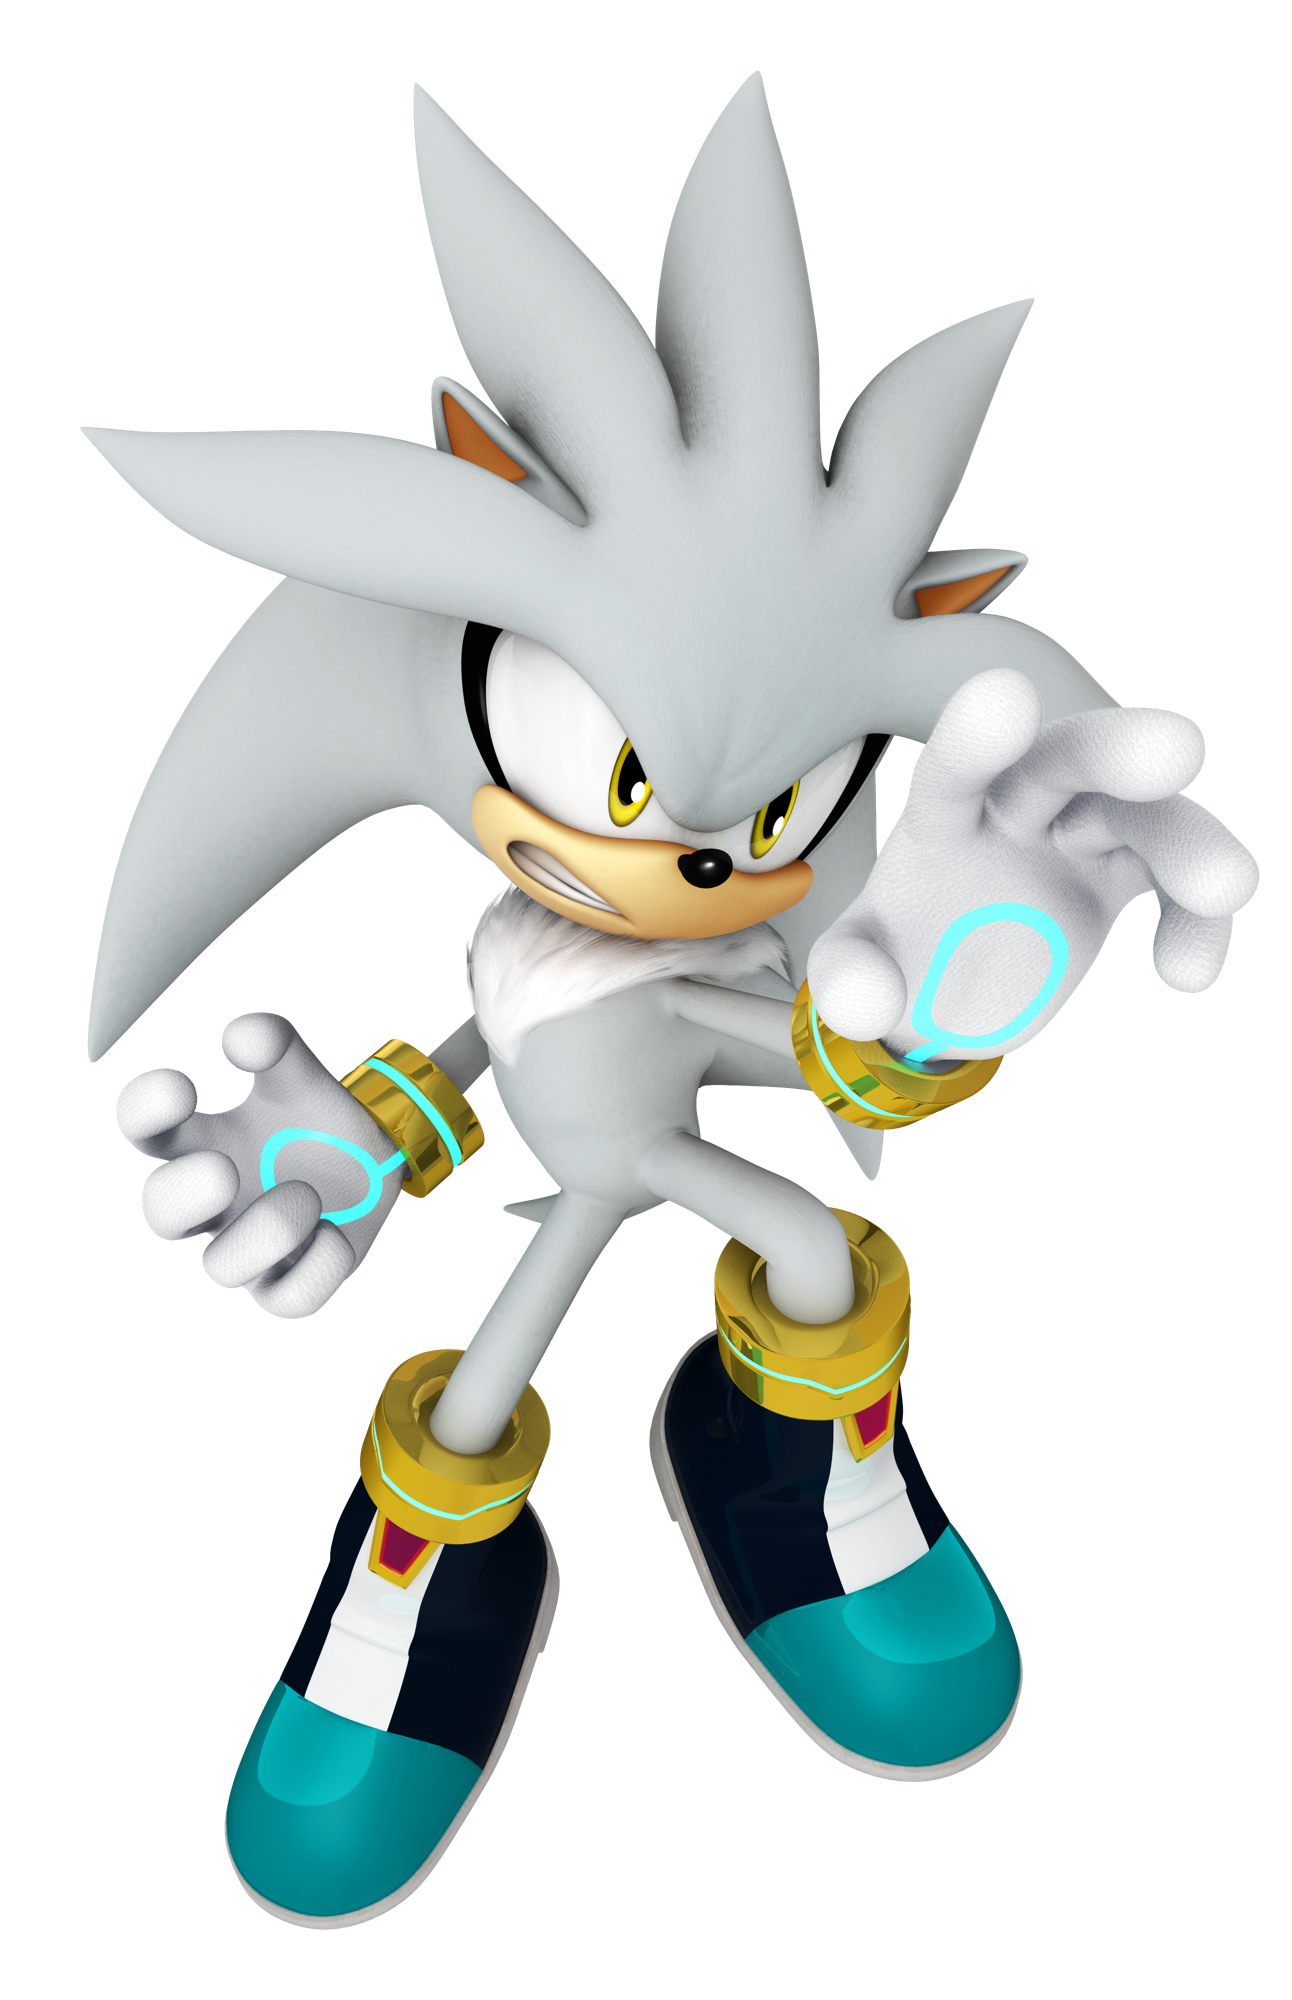 Youtube clipart sonic. Silver the hedgehog pinterest